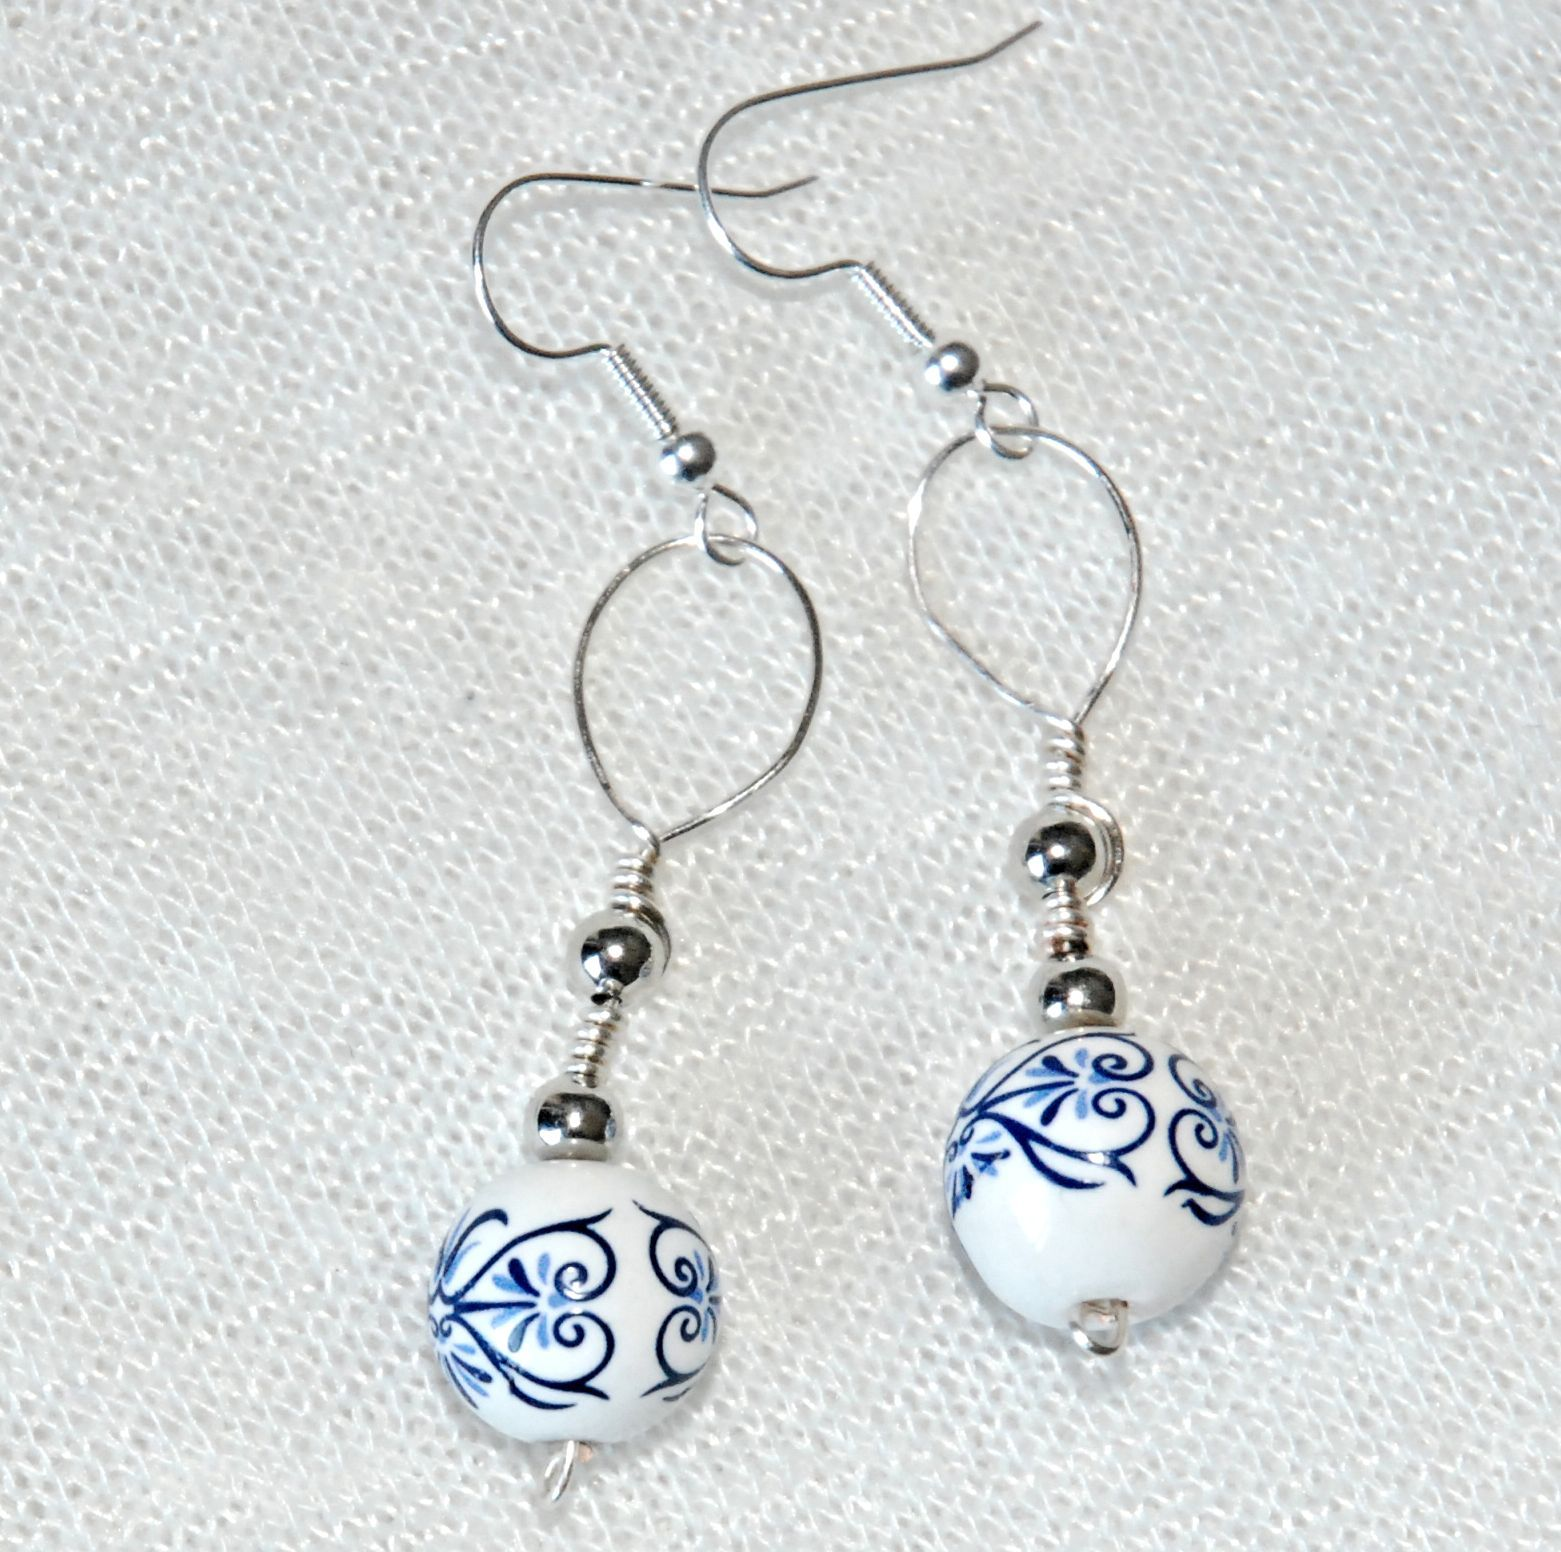 This is a pair of wire-wrapped earrings. The beads have a really ...